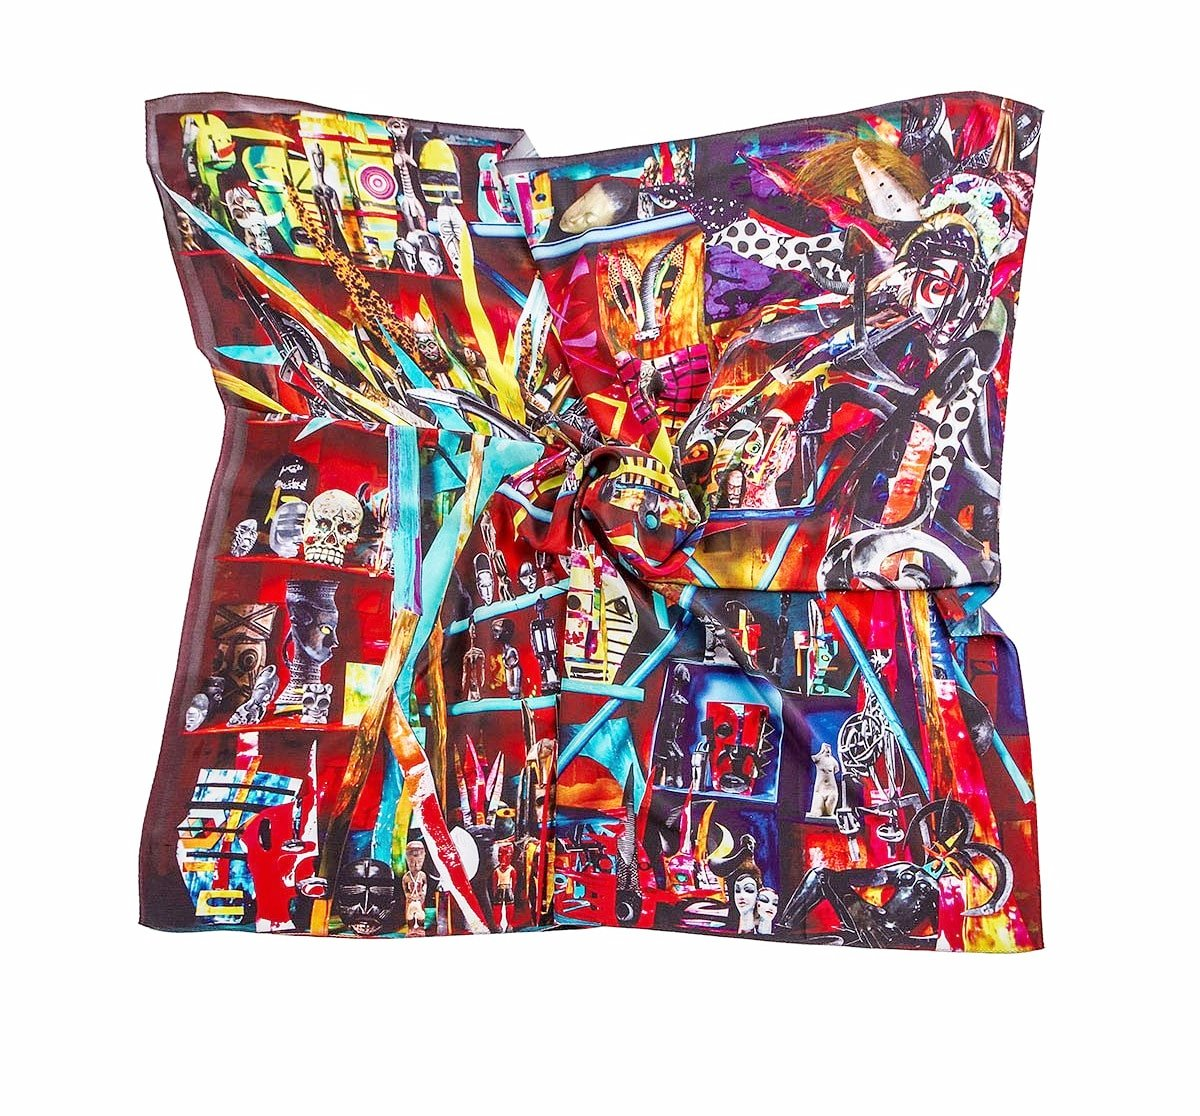 Hue Silk Scarf - Red Neon Collage Print Scarves - artTECA